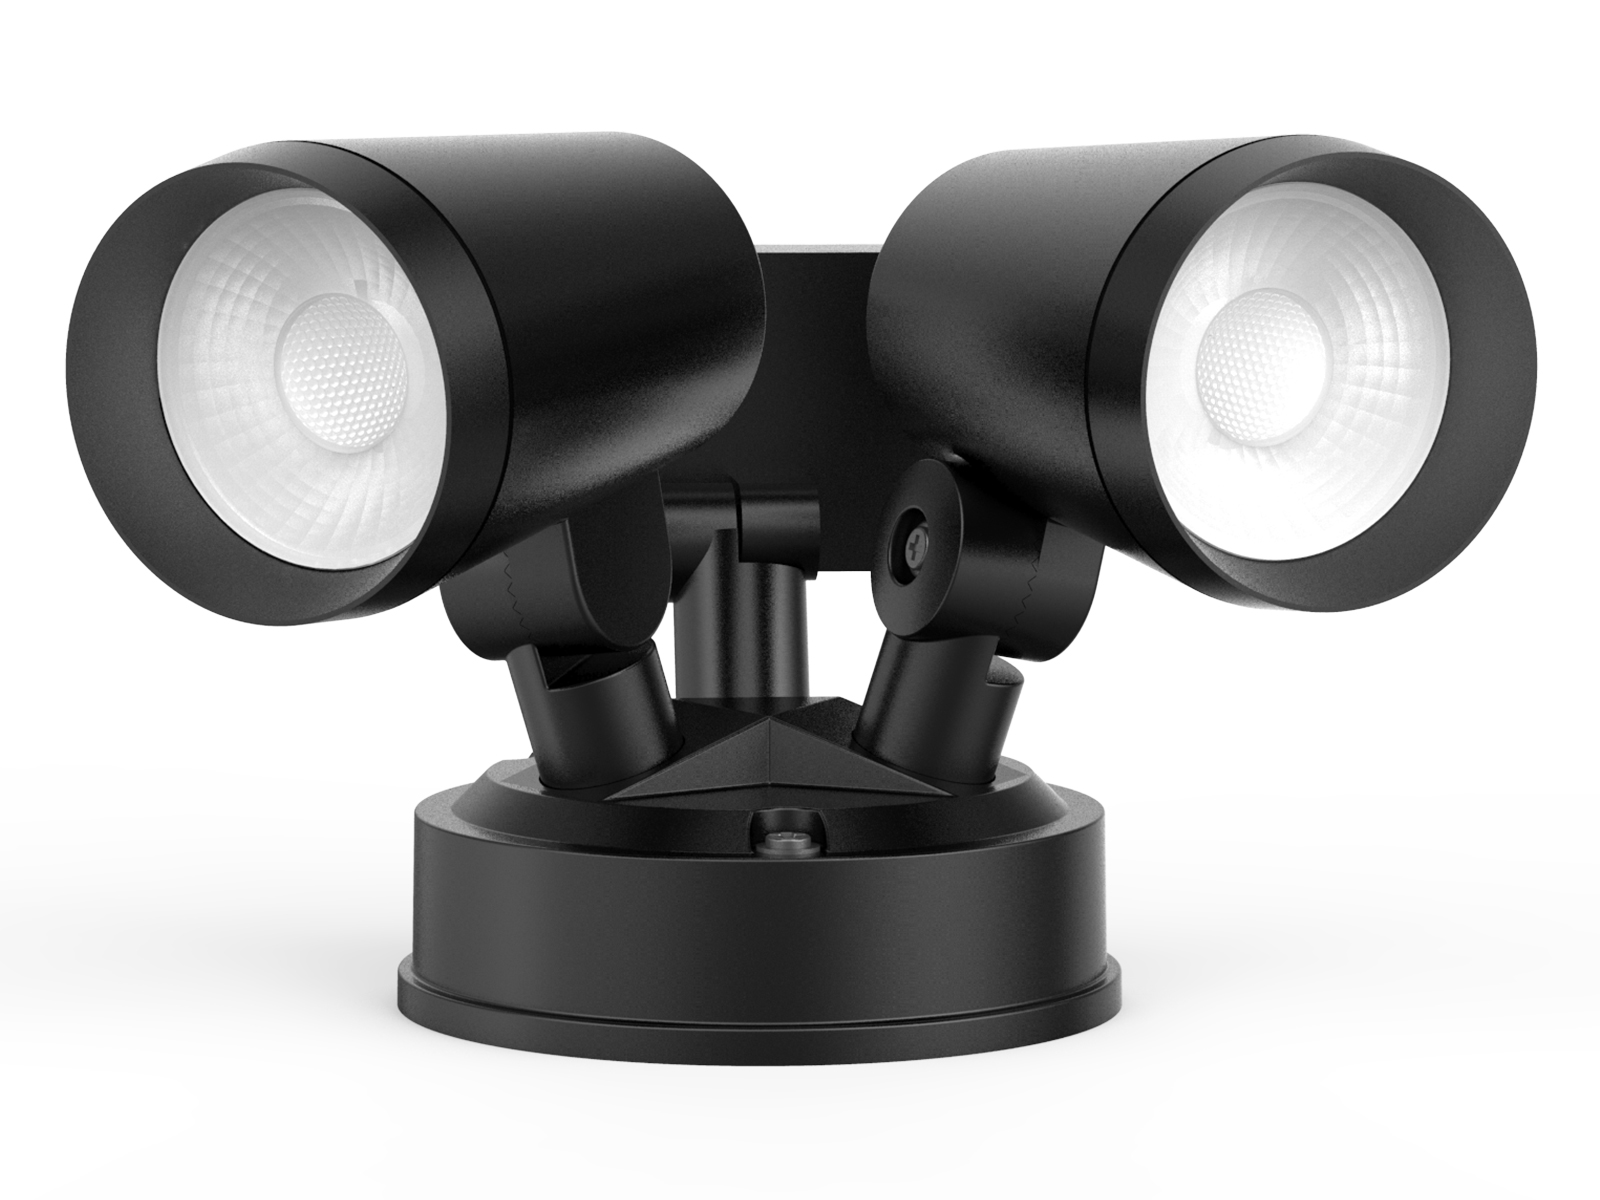 WL11 LED Outdoor Wall Lights With PIR Motion Sensor